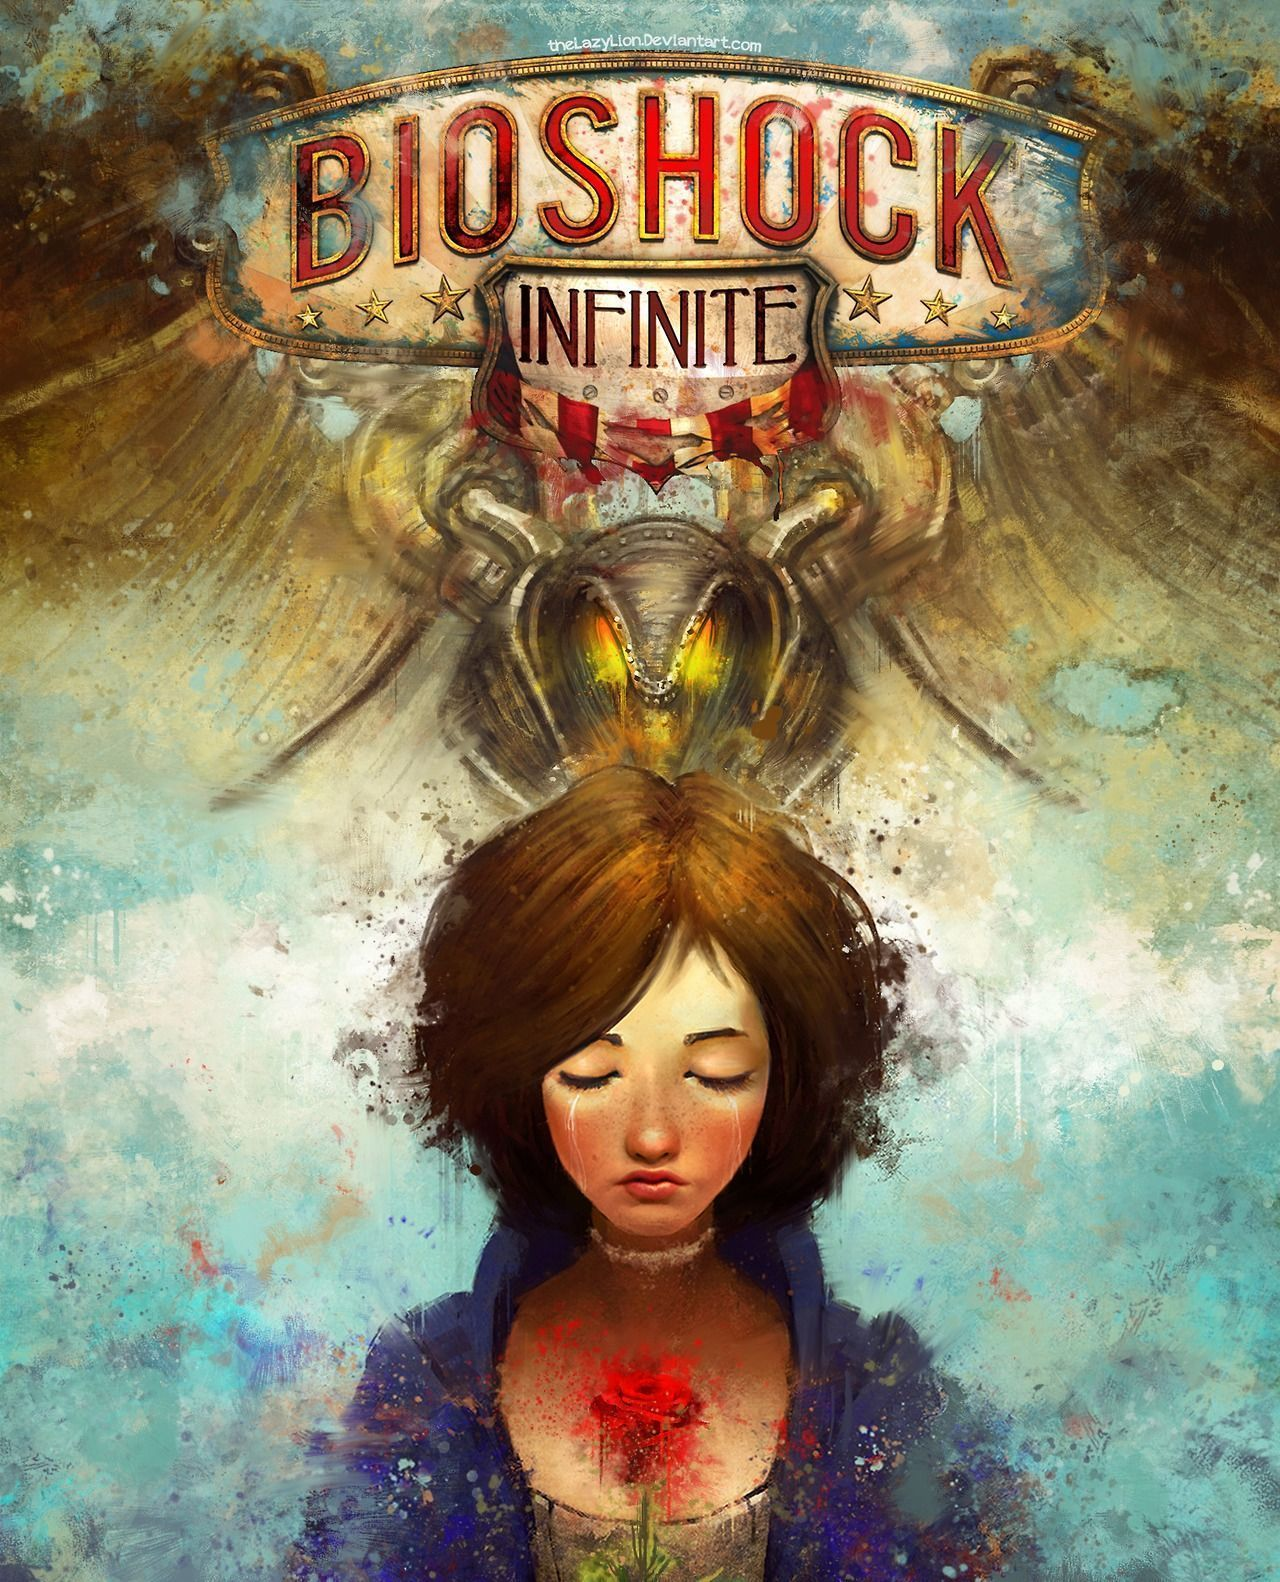 Alternate Bioshock Infinite game cover I painted in Photoshop. Also here's the deviant art link - http://thelazylion.deviantart.com/#/d5omtr5